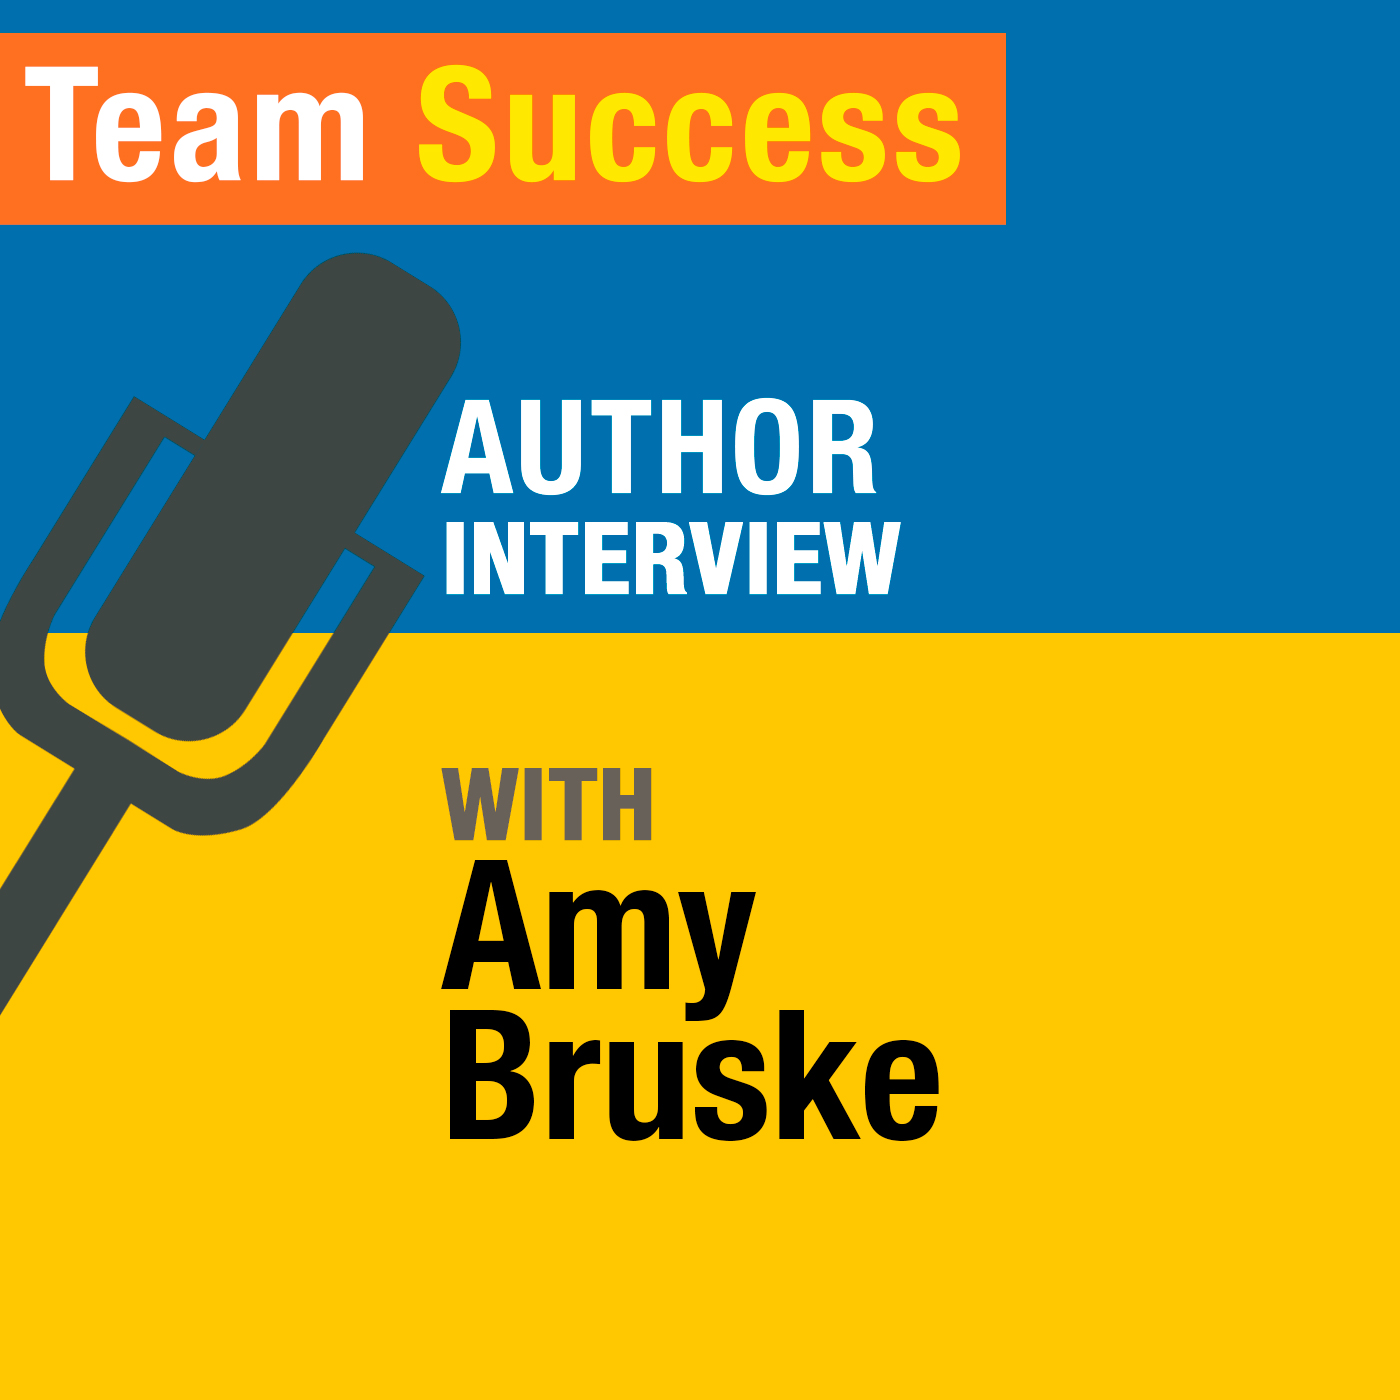 An Interview With Amy Bruske